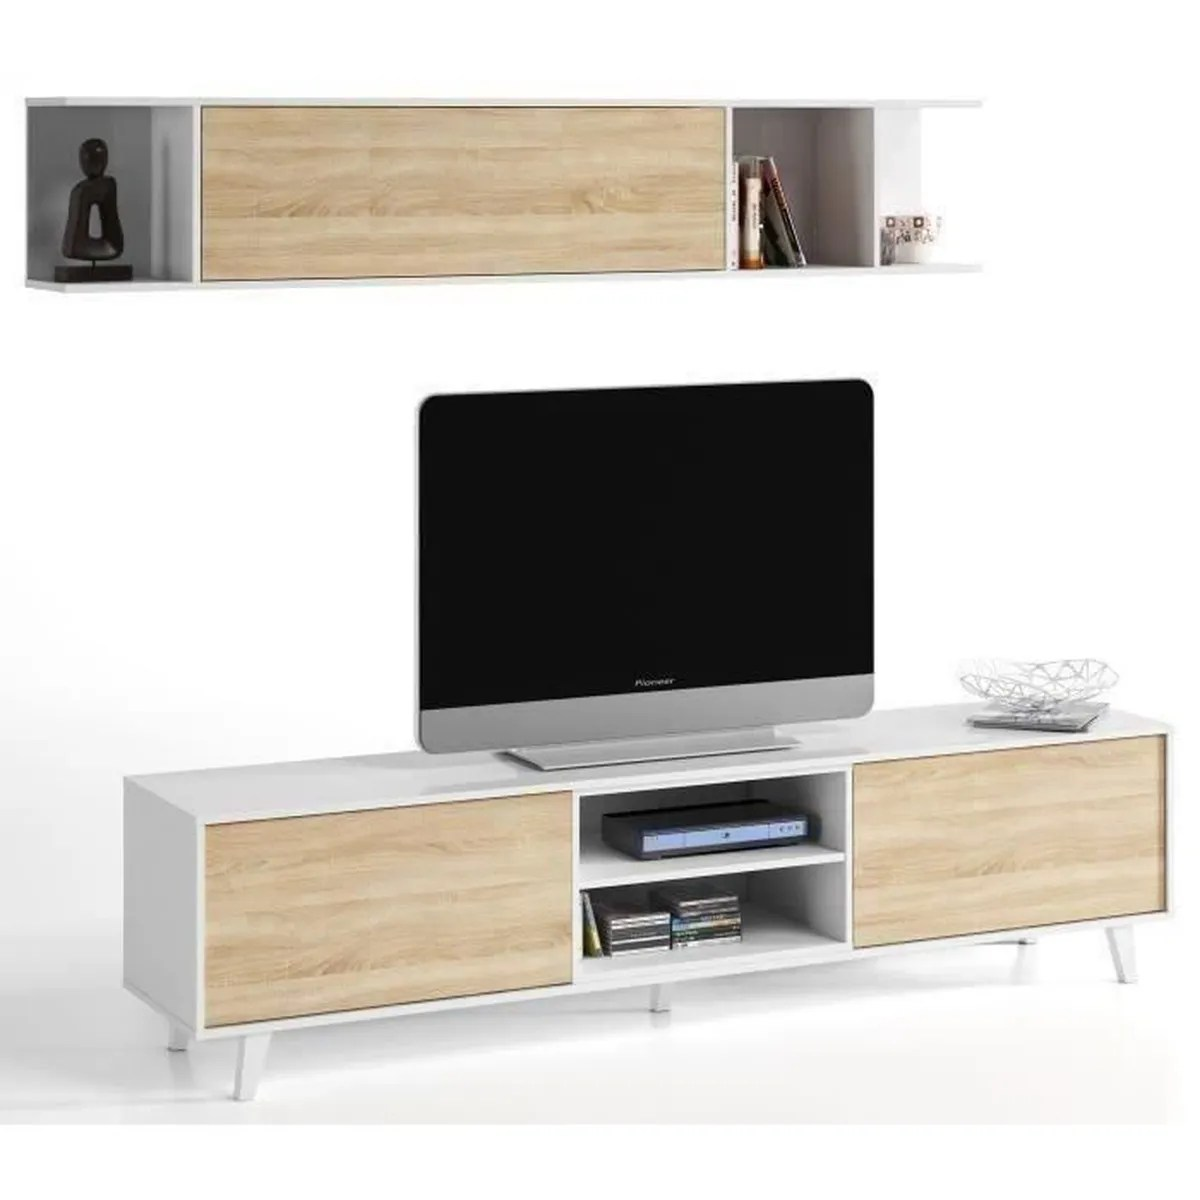 Meuble Tv Scandinave Gaby Sonoma Et Blanc Meuble Tv Scandinave Led Meuble Tv Dainn Design Scandinave